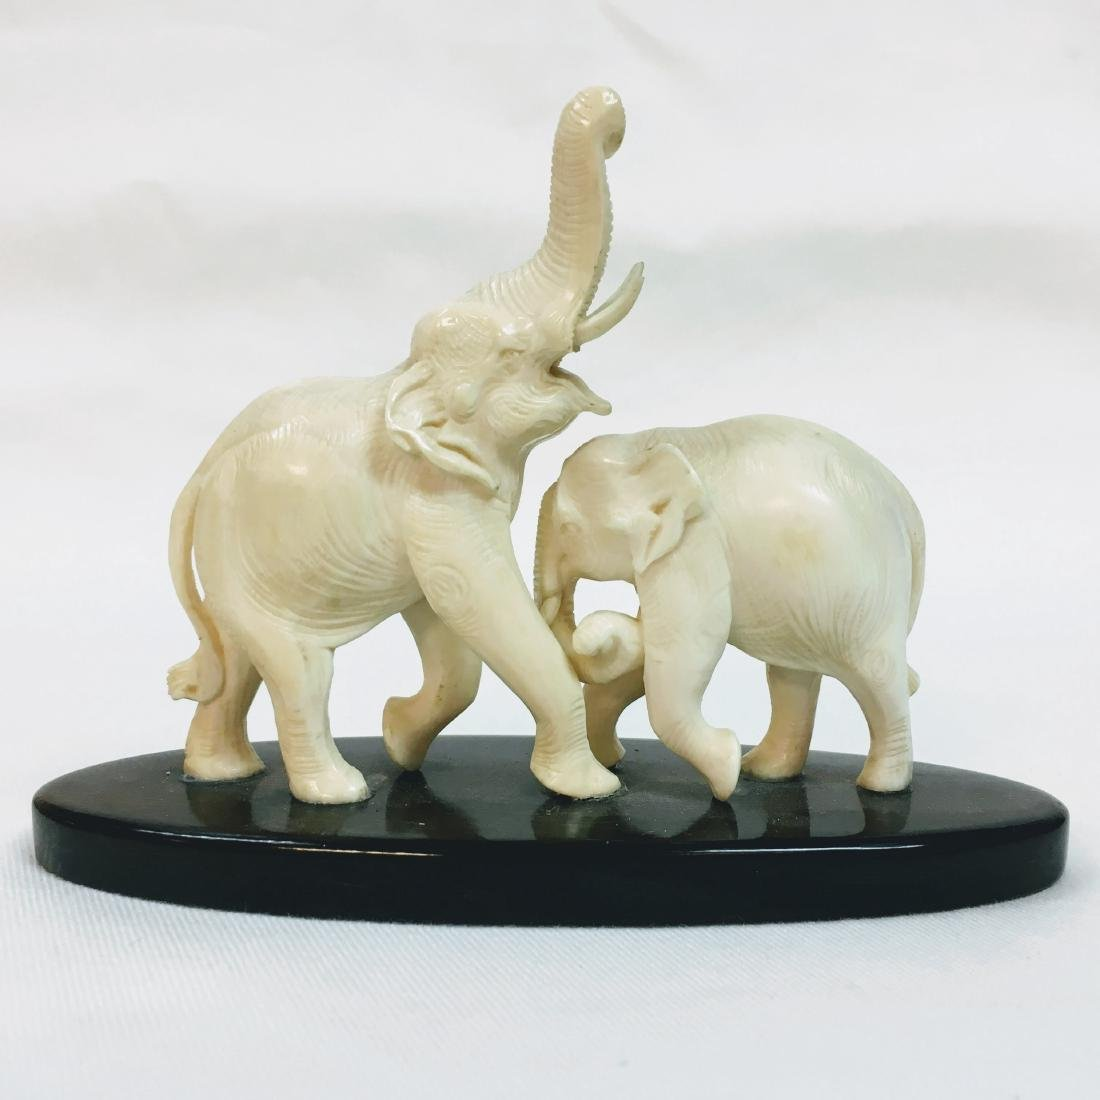 Handcarved two Elephant figure on base